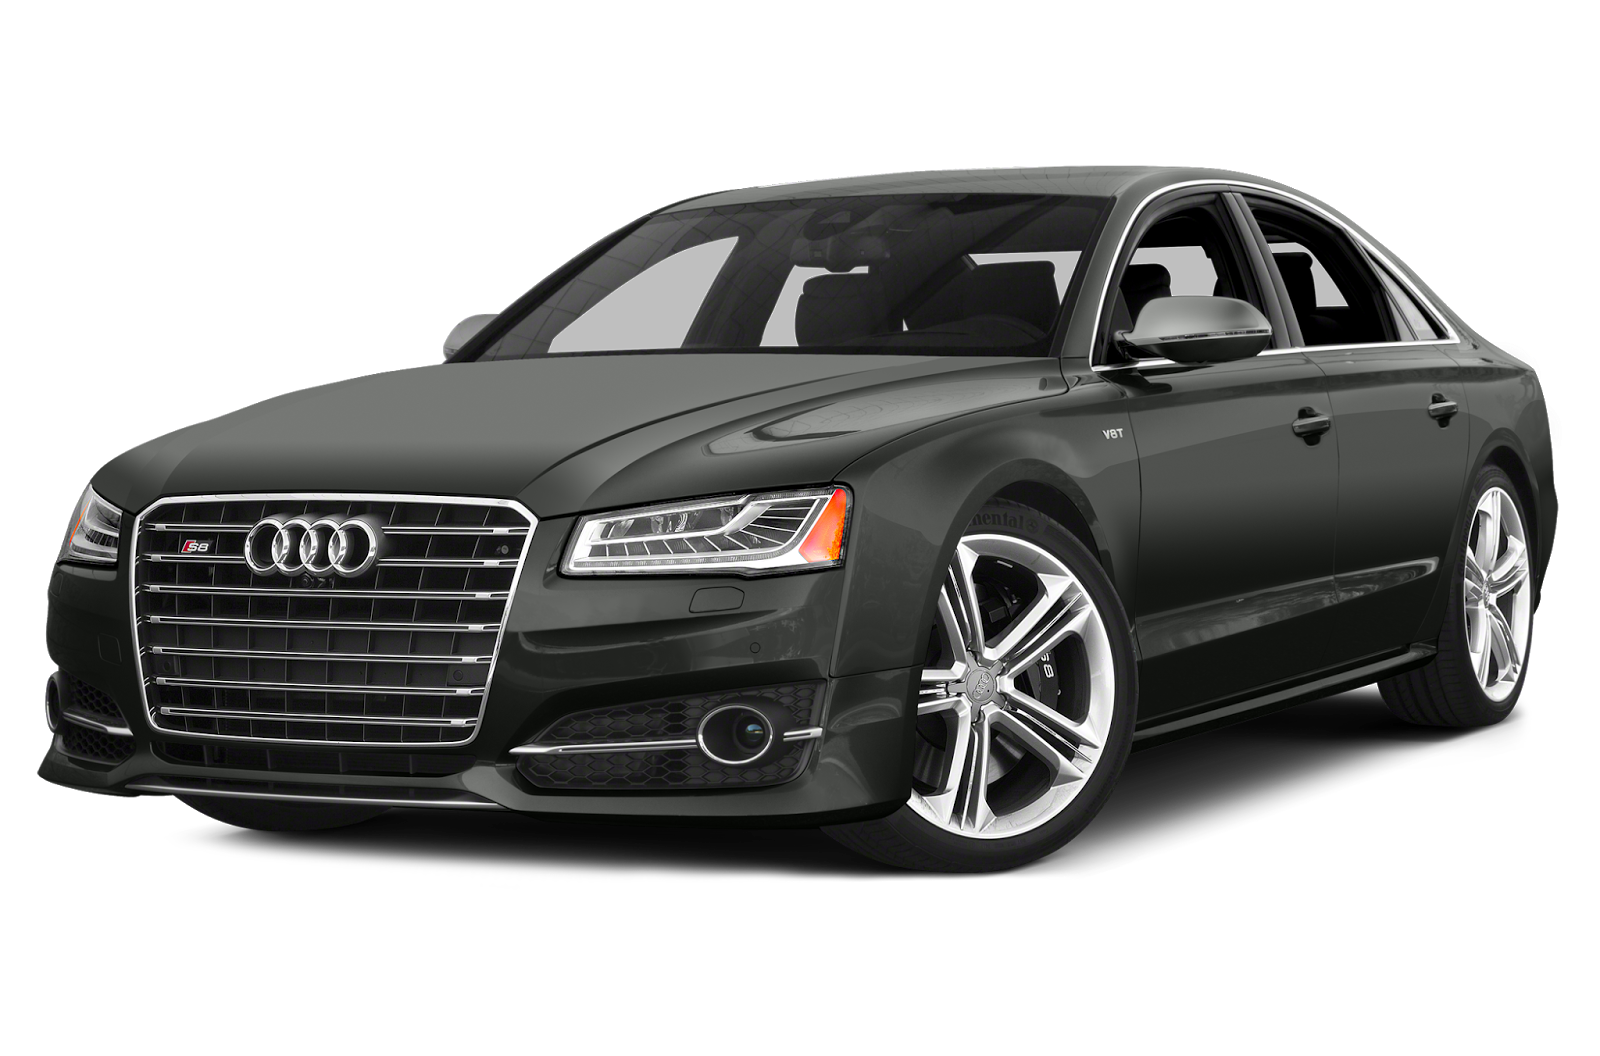 2015 Audi S8 High Resolution Pictures